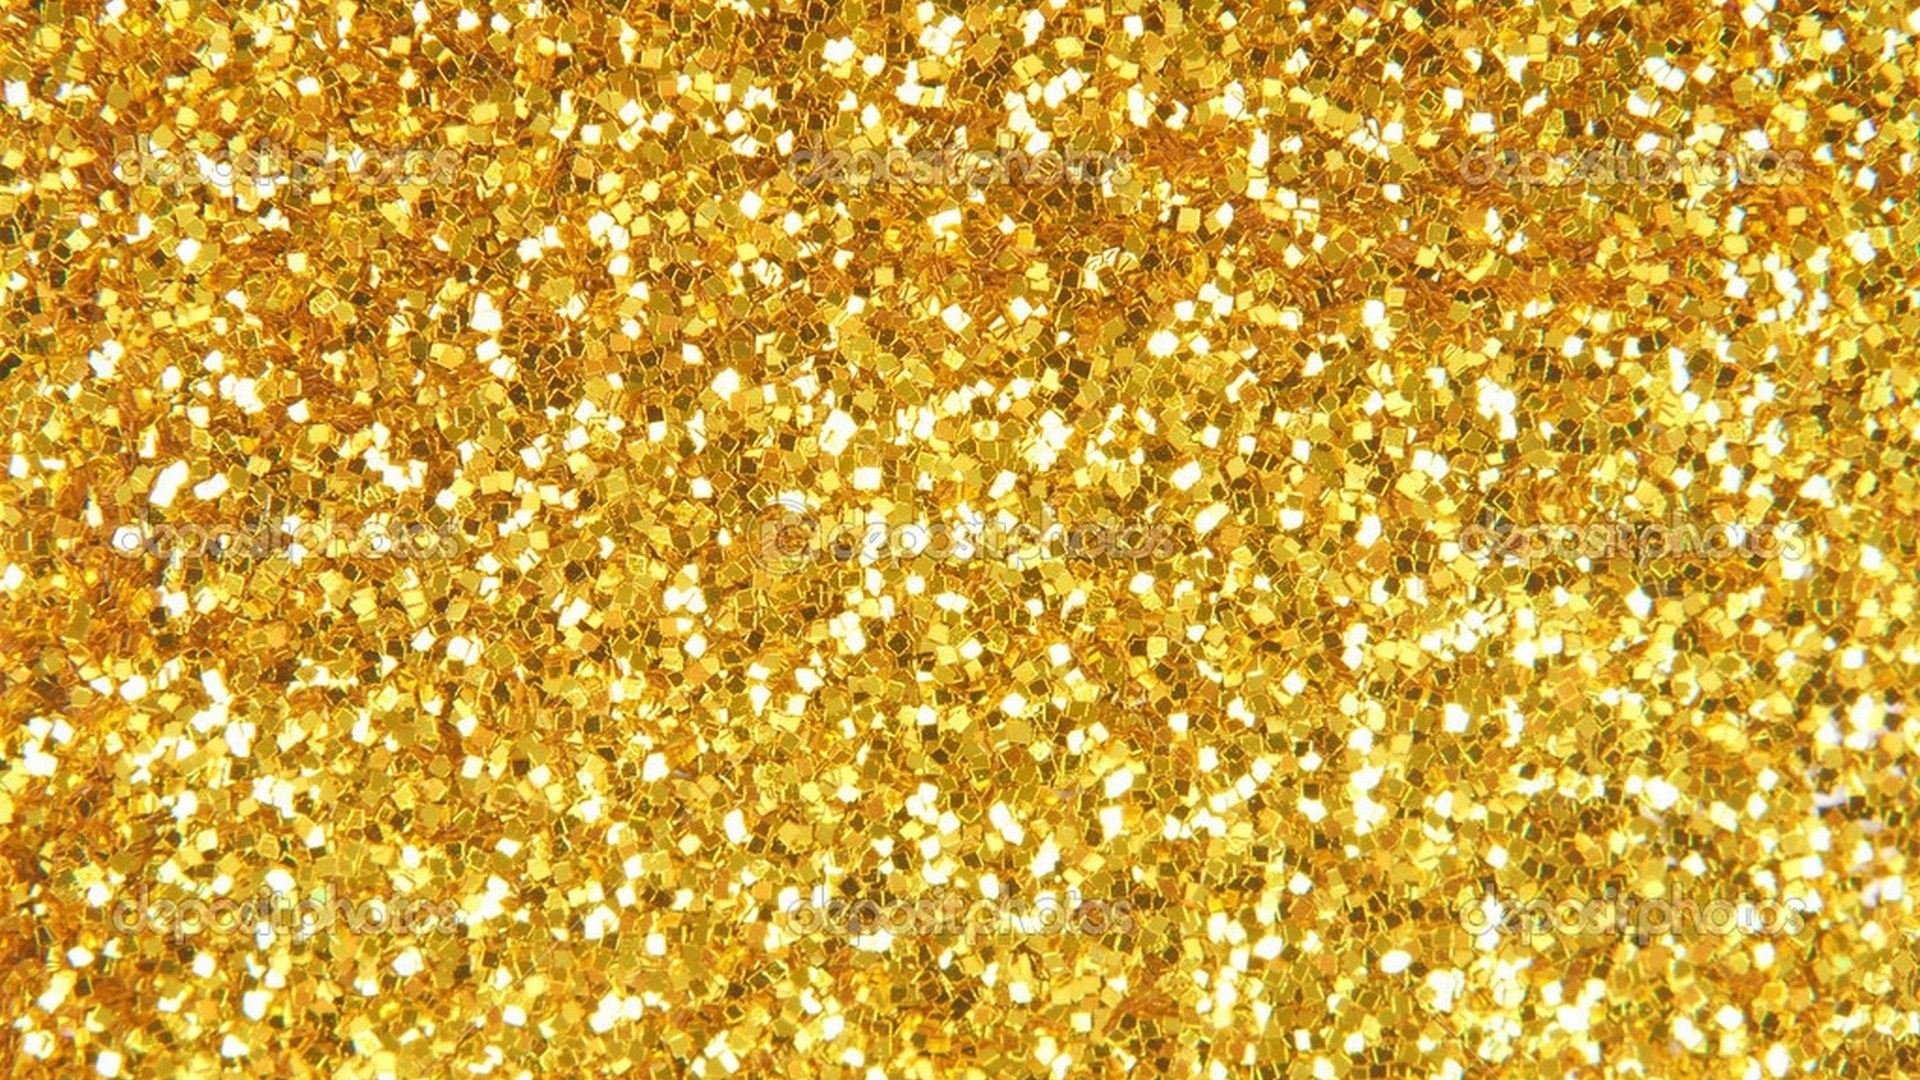 Gold Glitter Wallpaper For Desktop